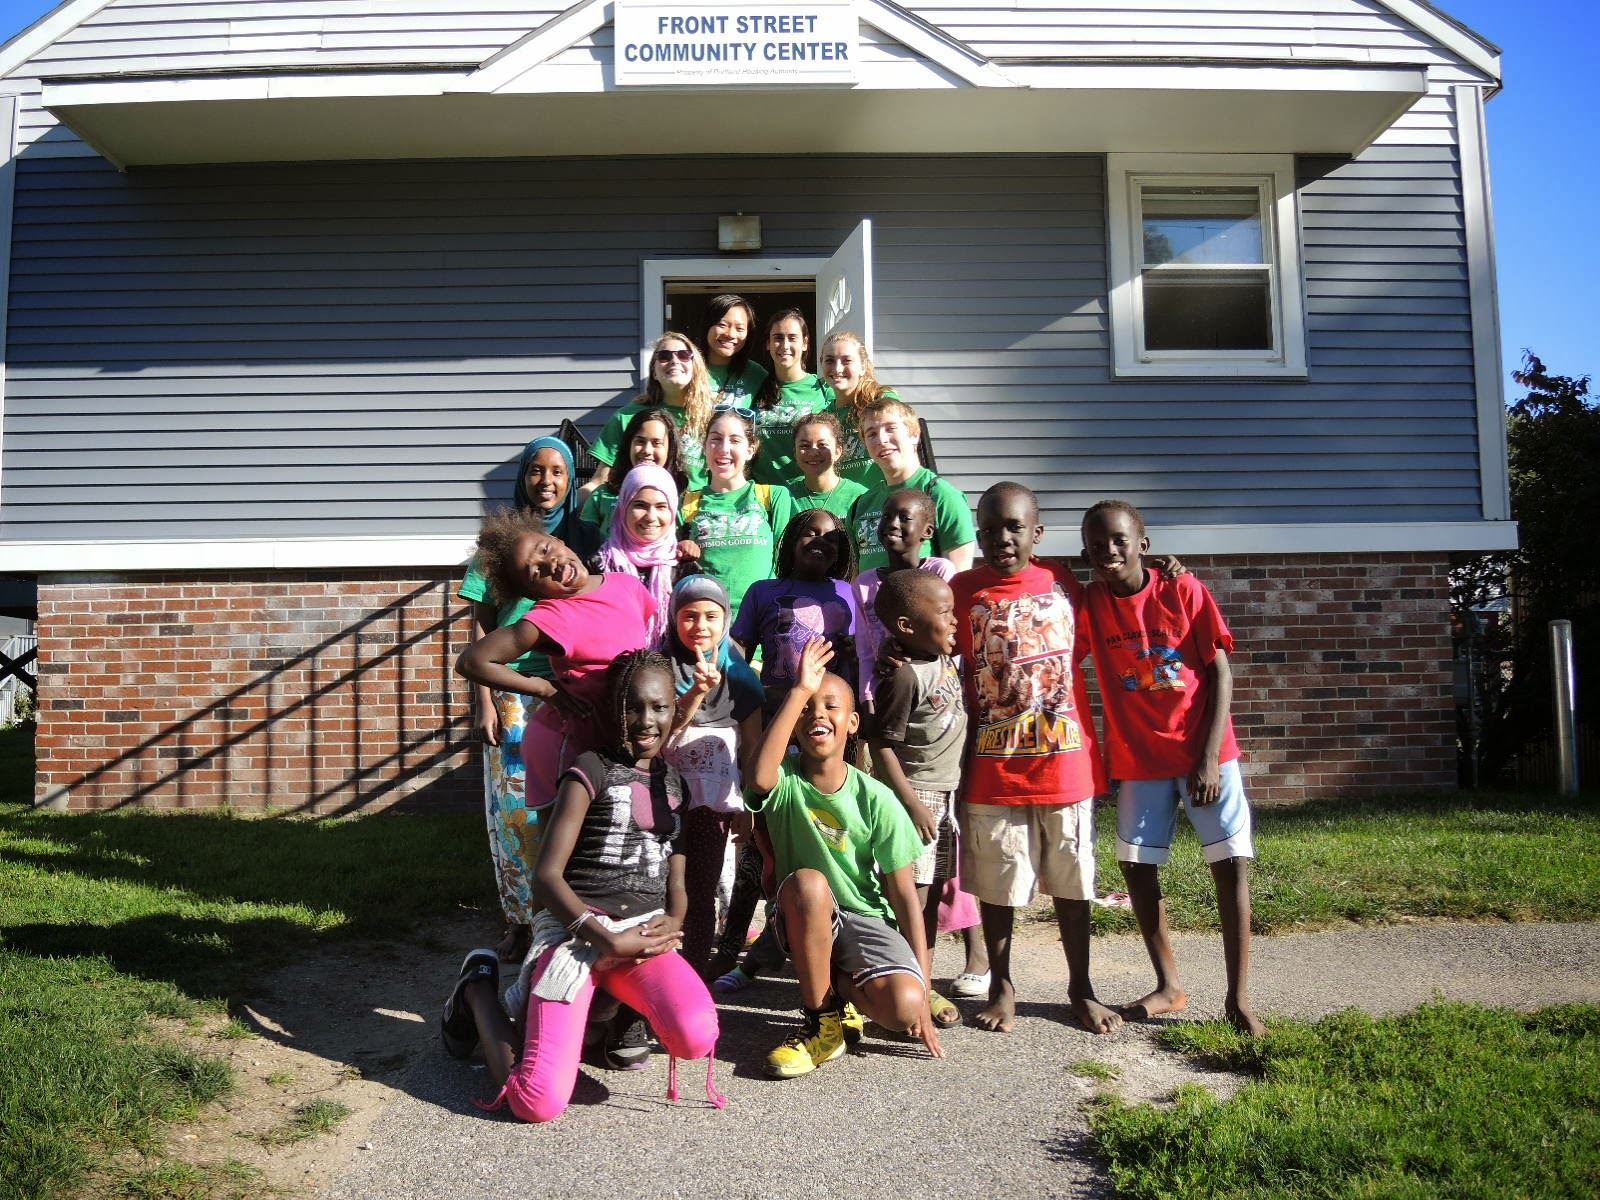 Youth from Front Street pose with volunteers in front of the Community Building